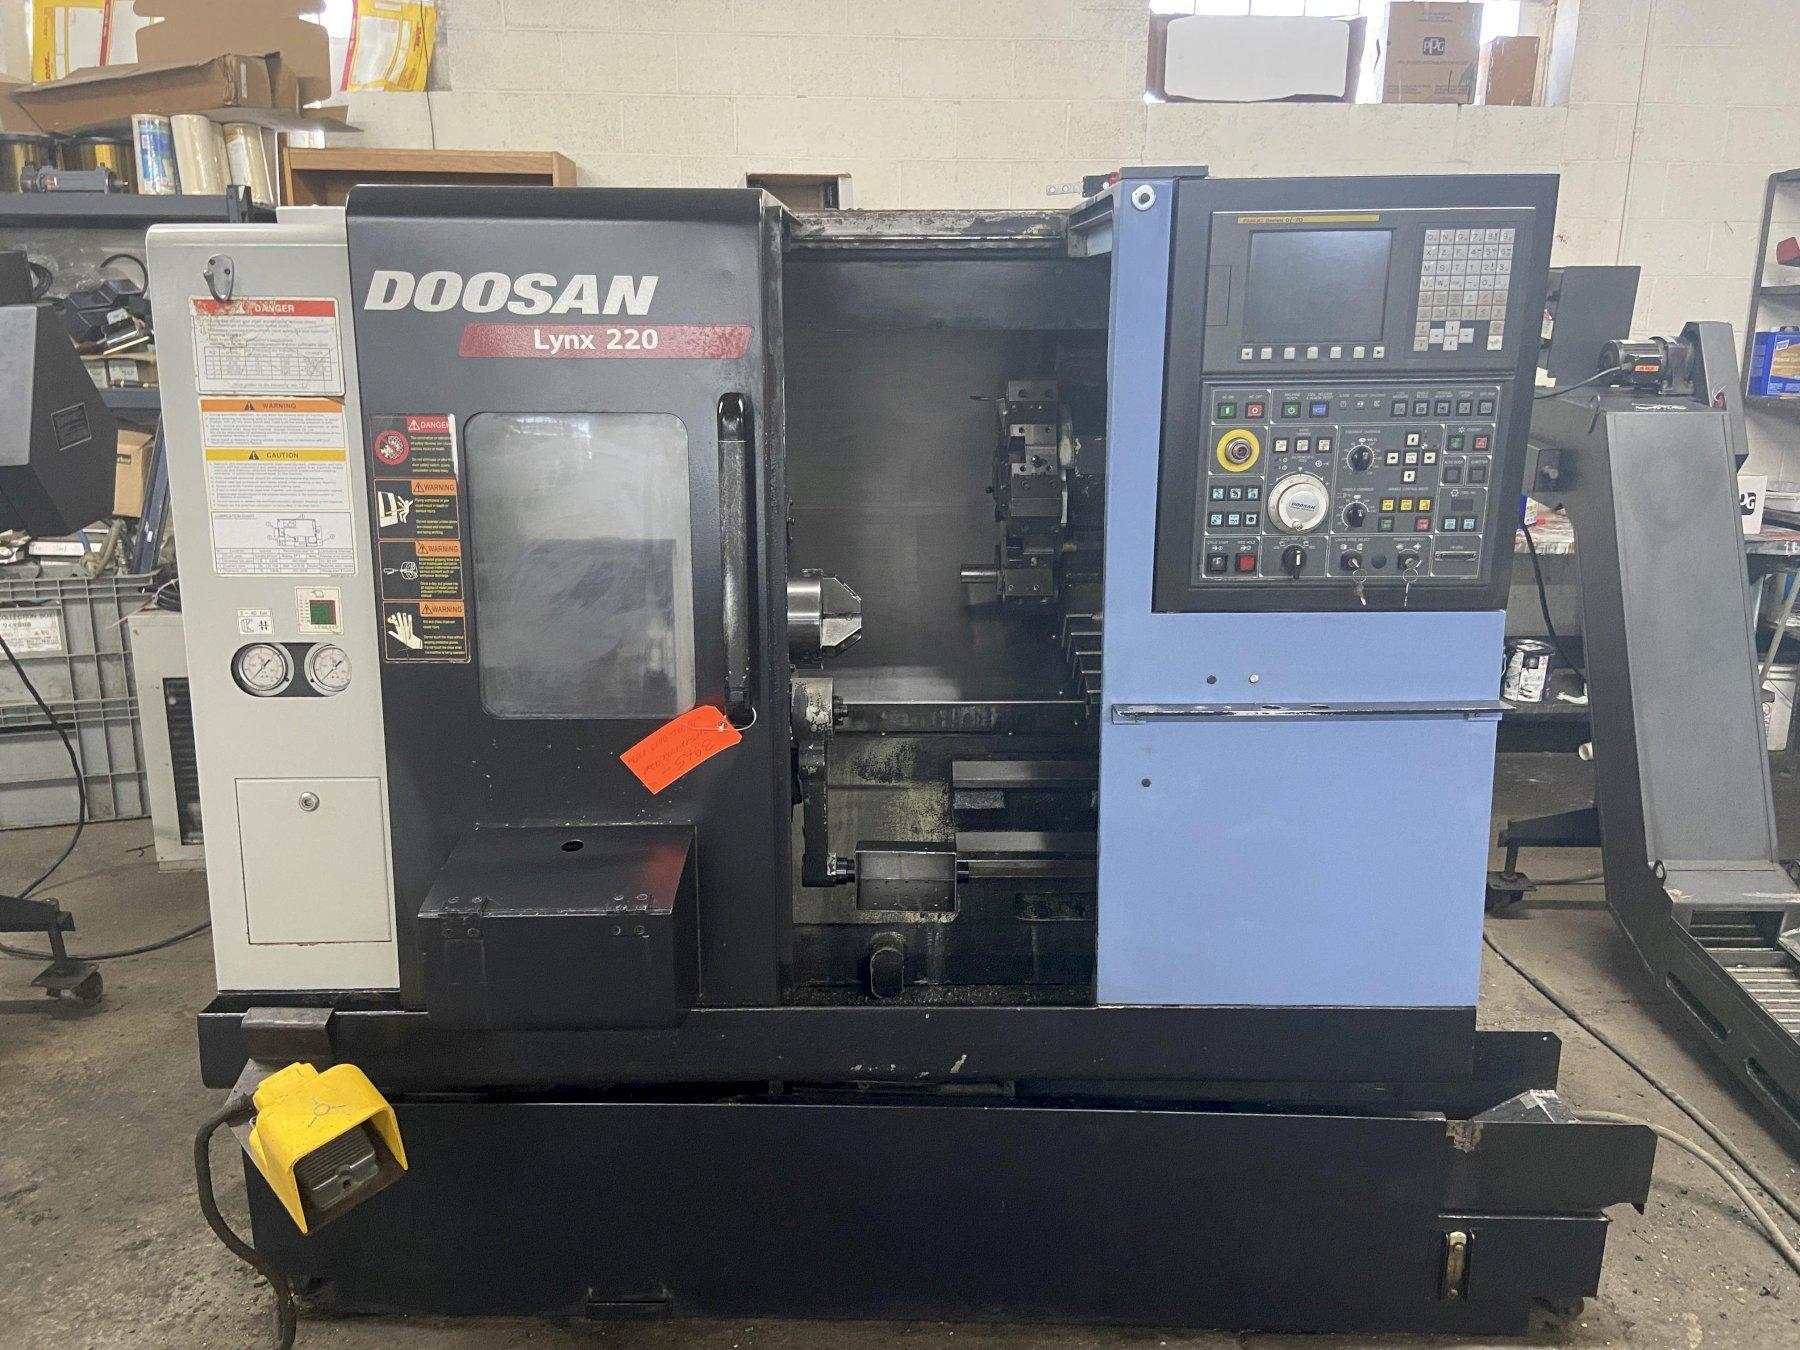 "Doosan Lynx 220A CNC Lathe, Fanuc 0iTC, 6"" Chuck, 20.8"" Swing, 12.6"" Turn Length, 12 Pos Turret, Probe, Holders, Parts Catcher, Prog TS, BF Ready, 2007"